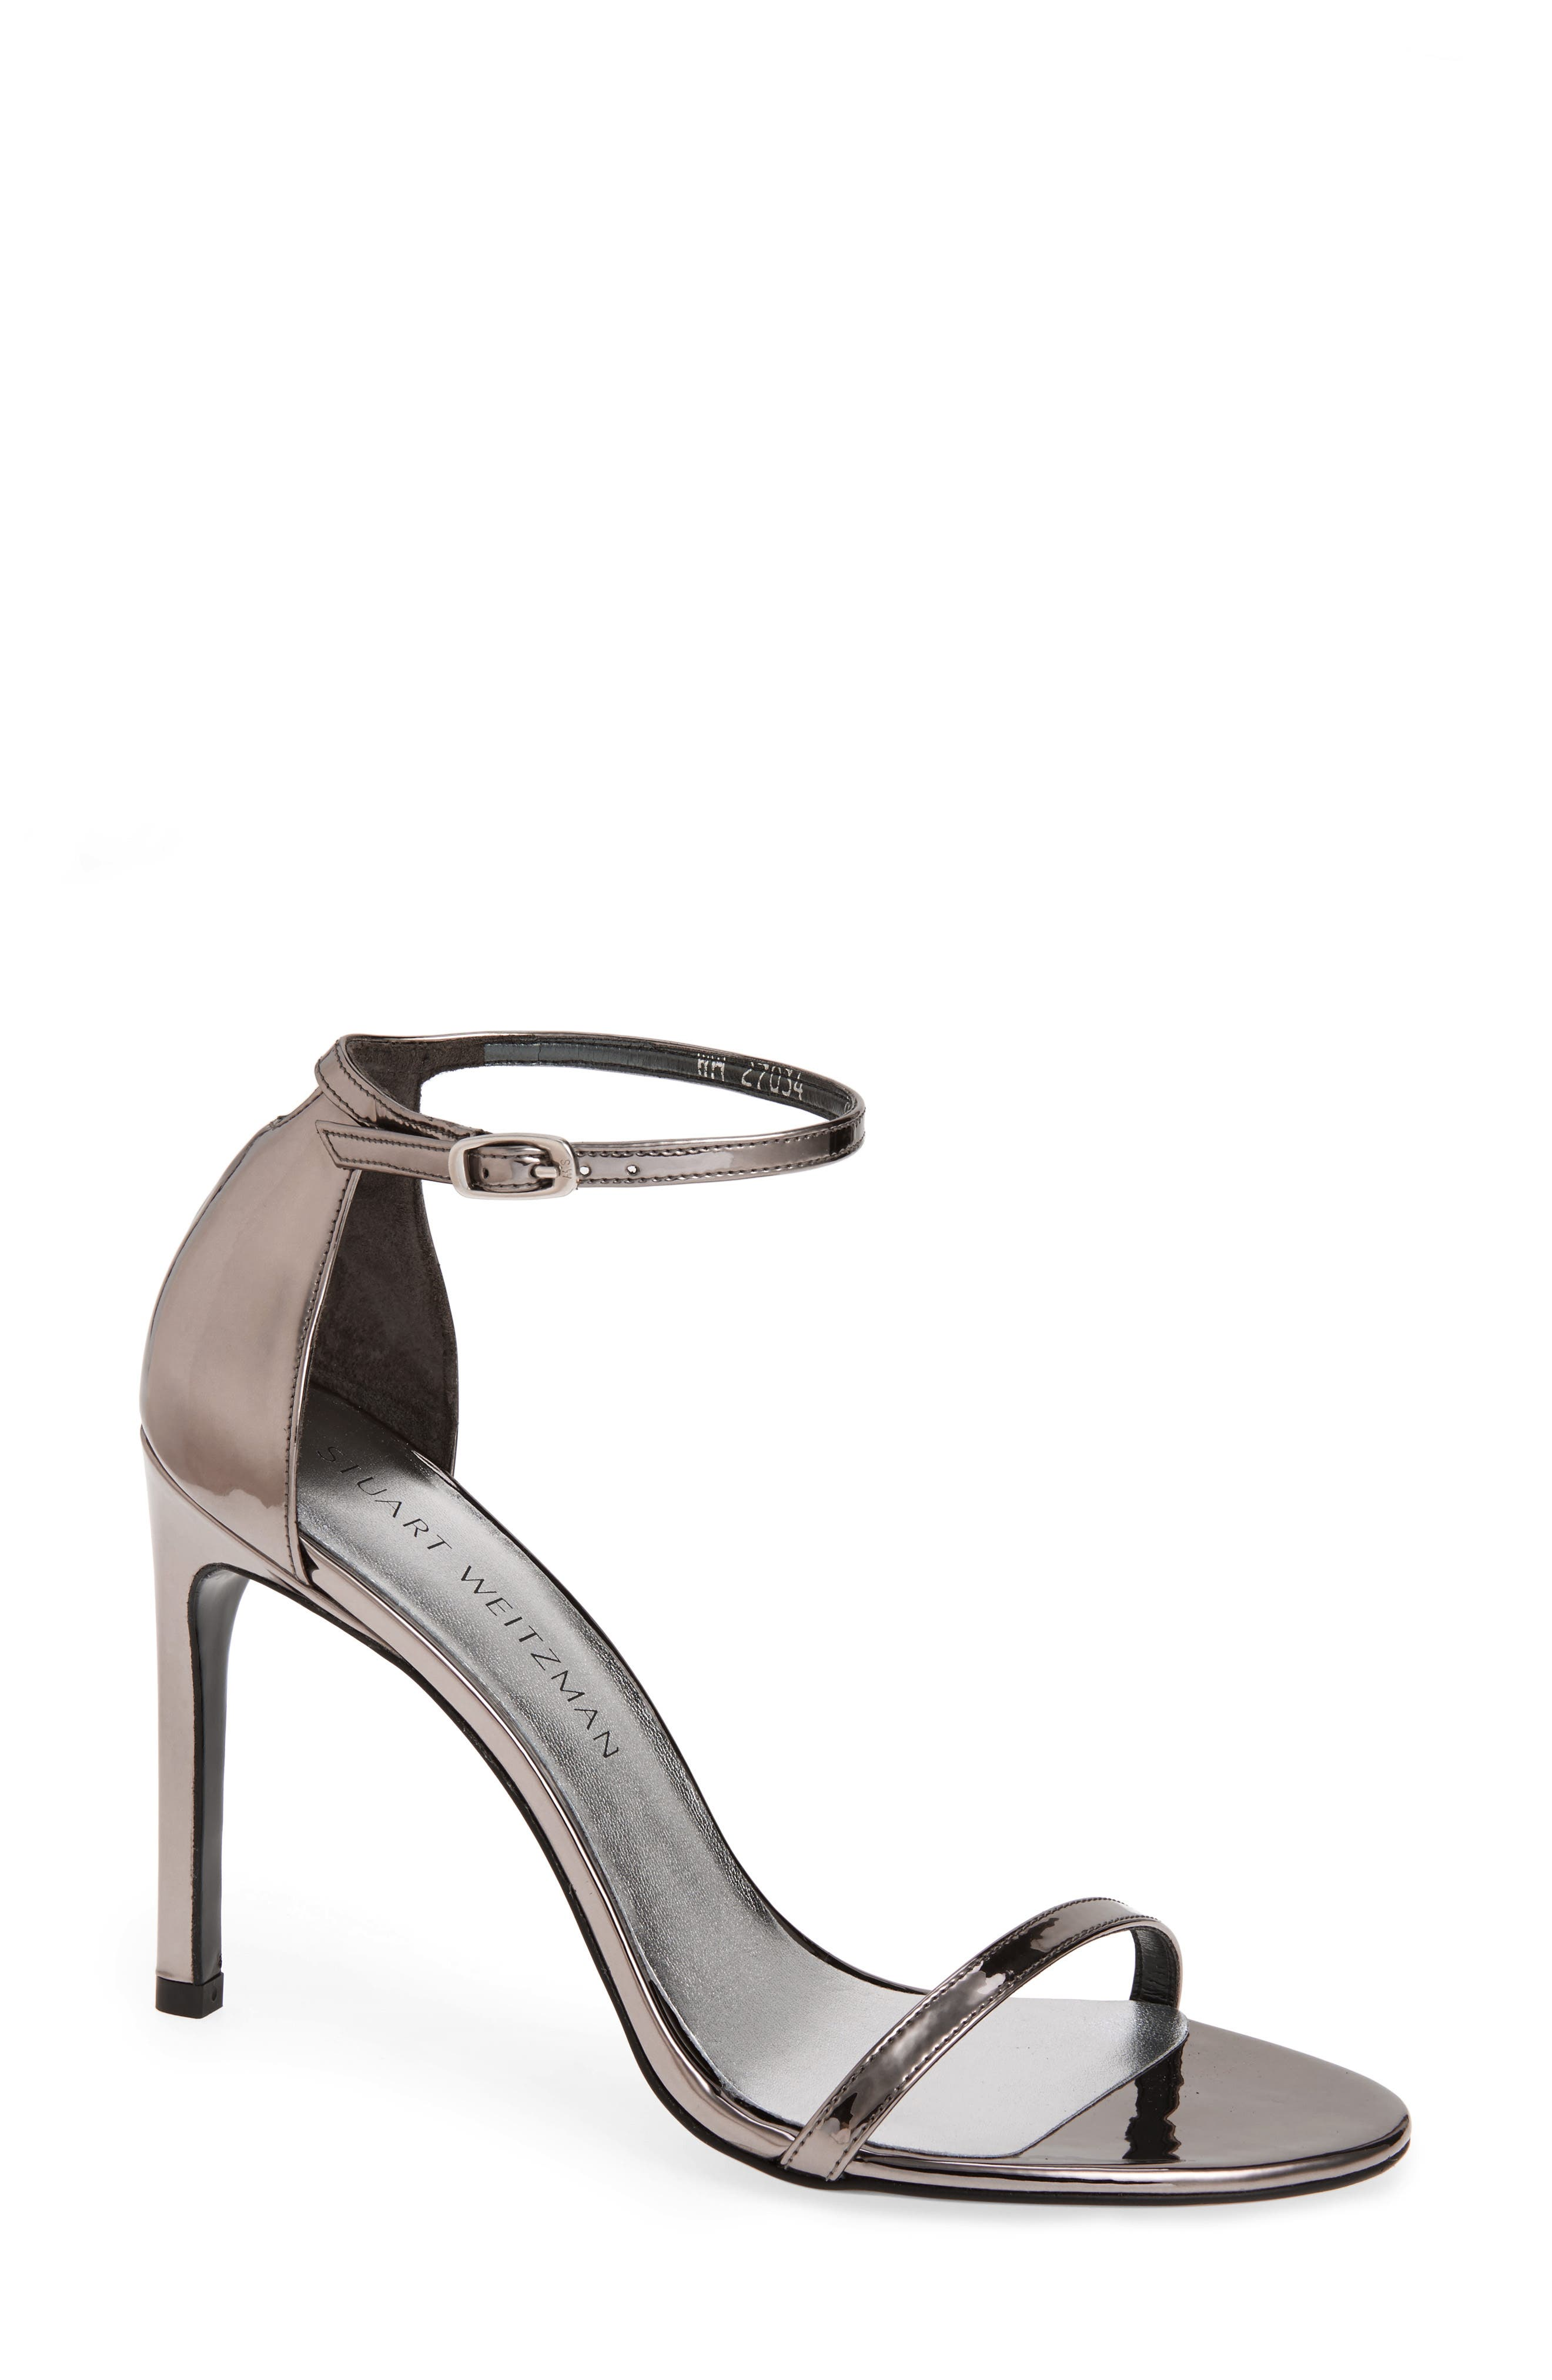 Nudistsong Ankle Strap Sandal,                         Main,                         color, PEWTER GLASS